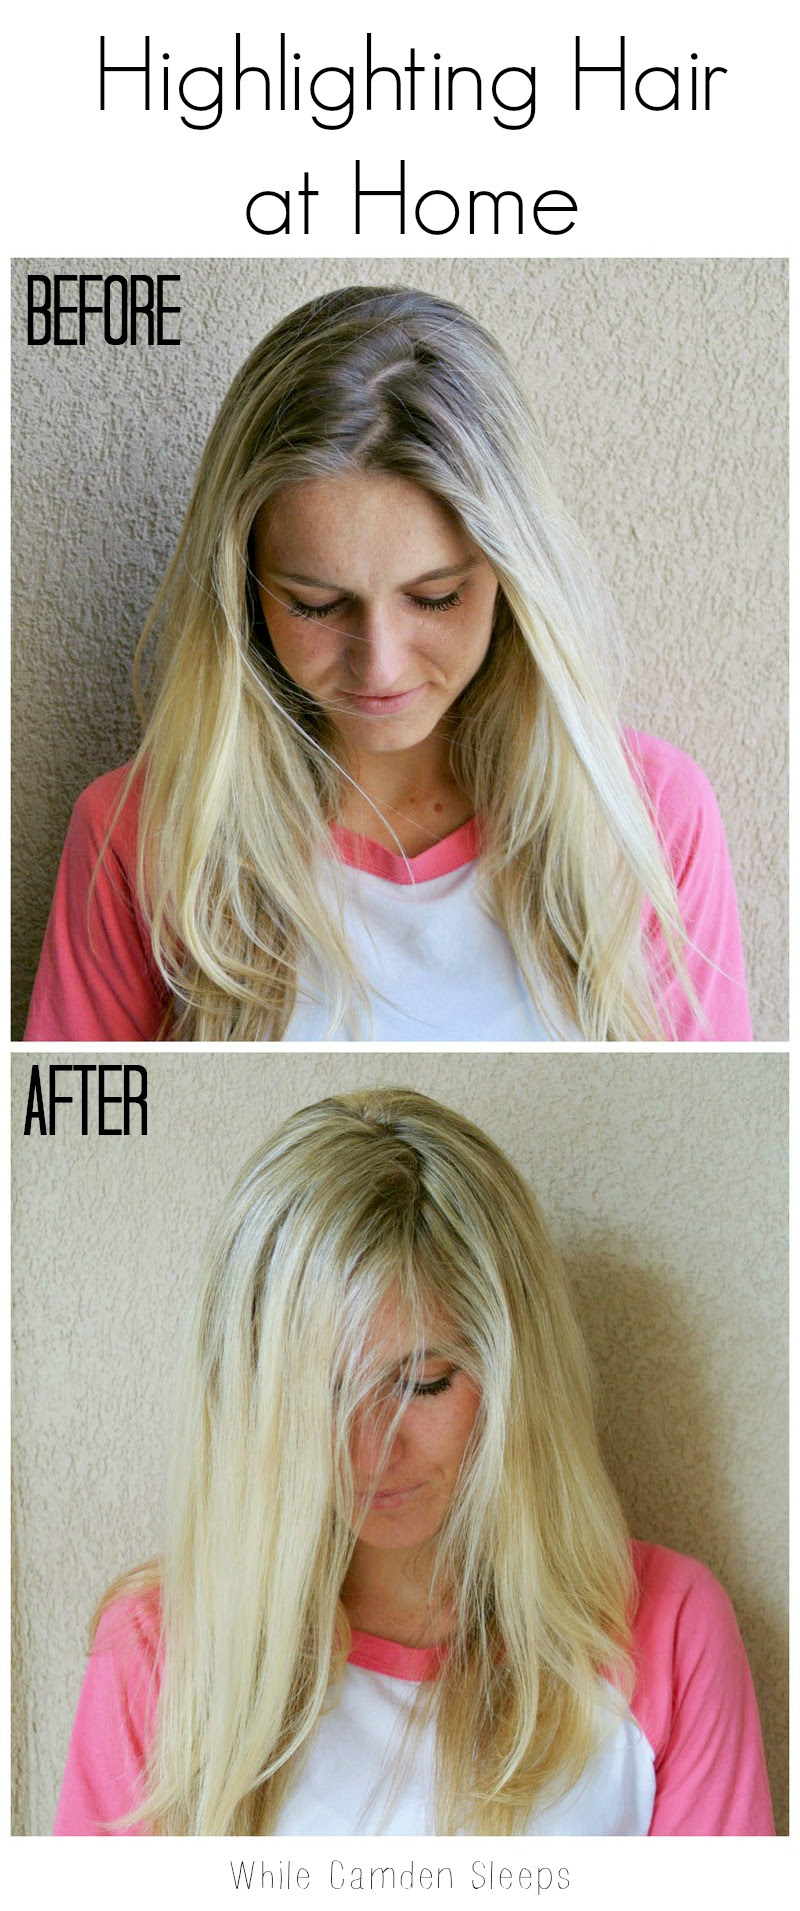 RefashioningHair: Highlighting hair at home